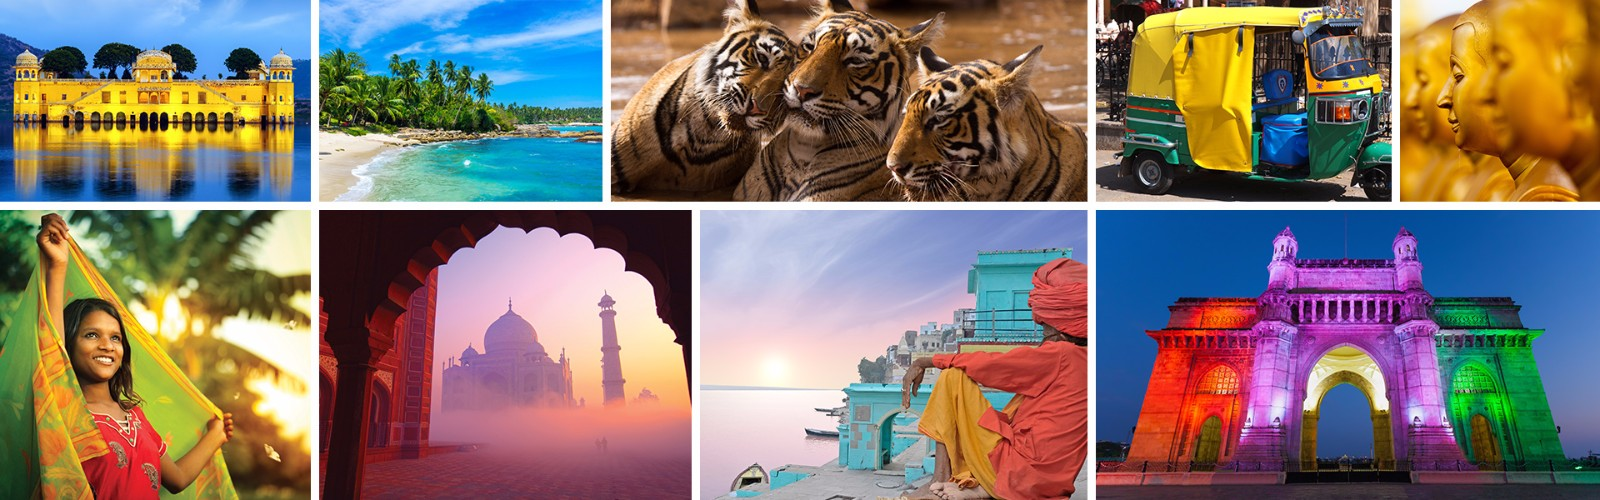 India Travel Guide | Wendy Wu Tours